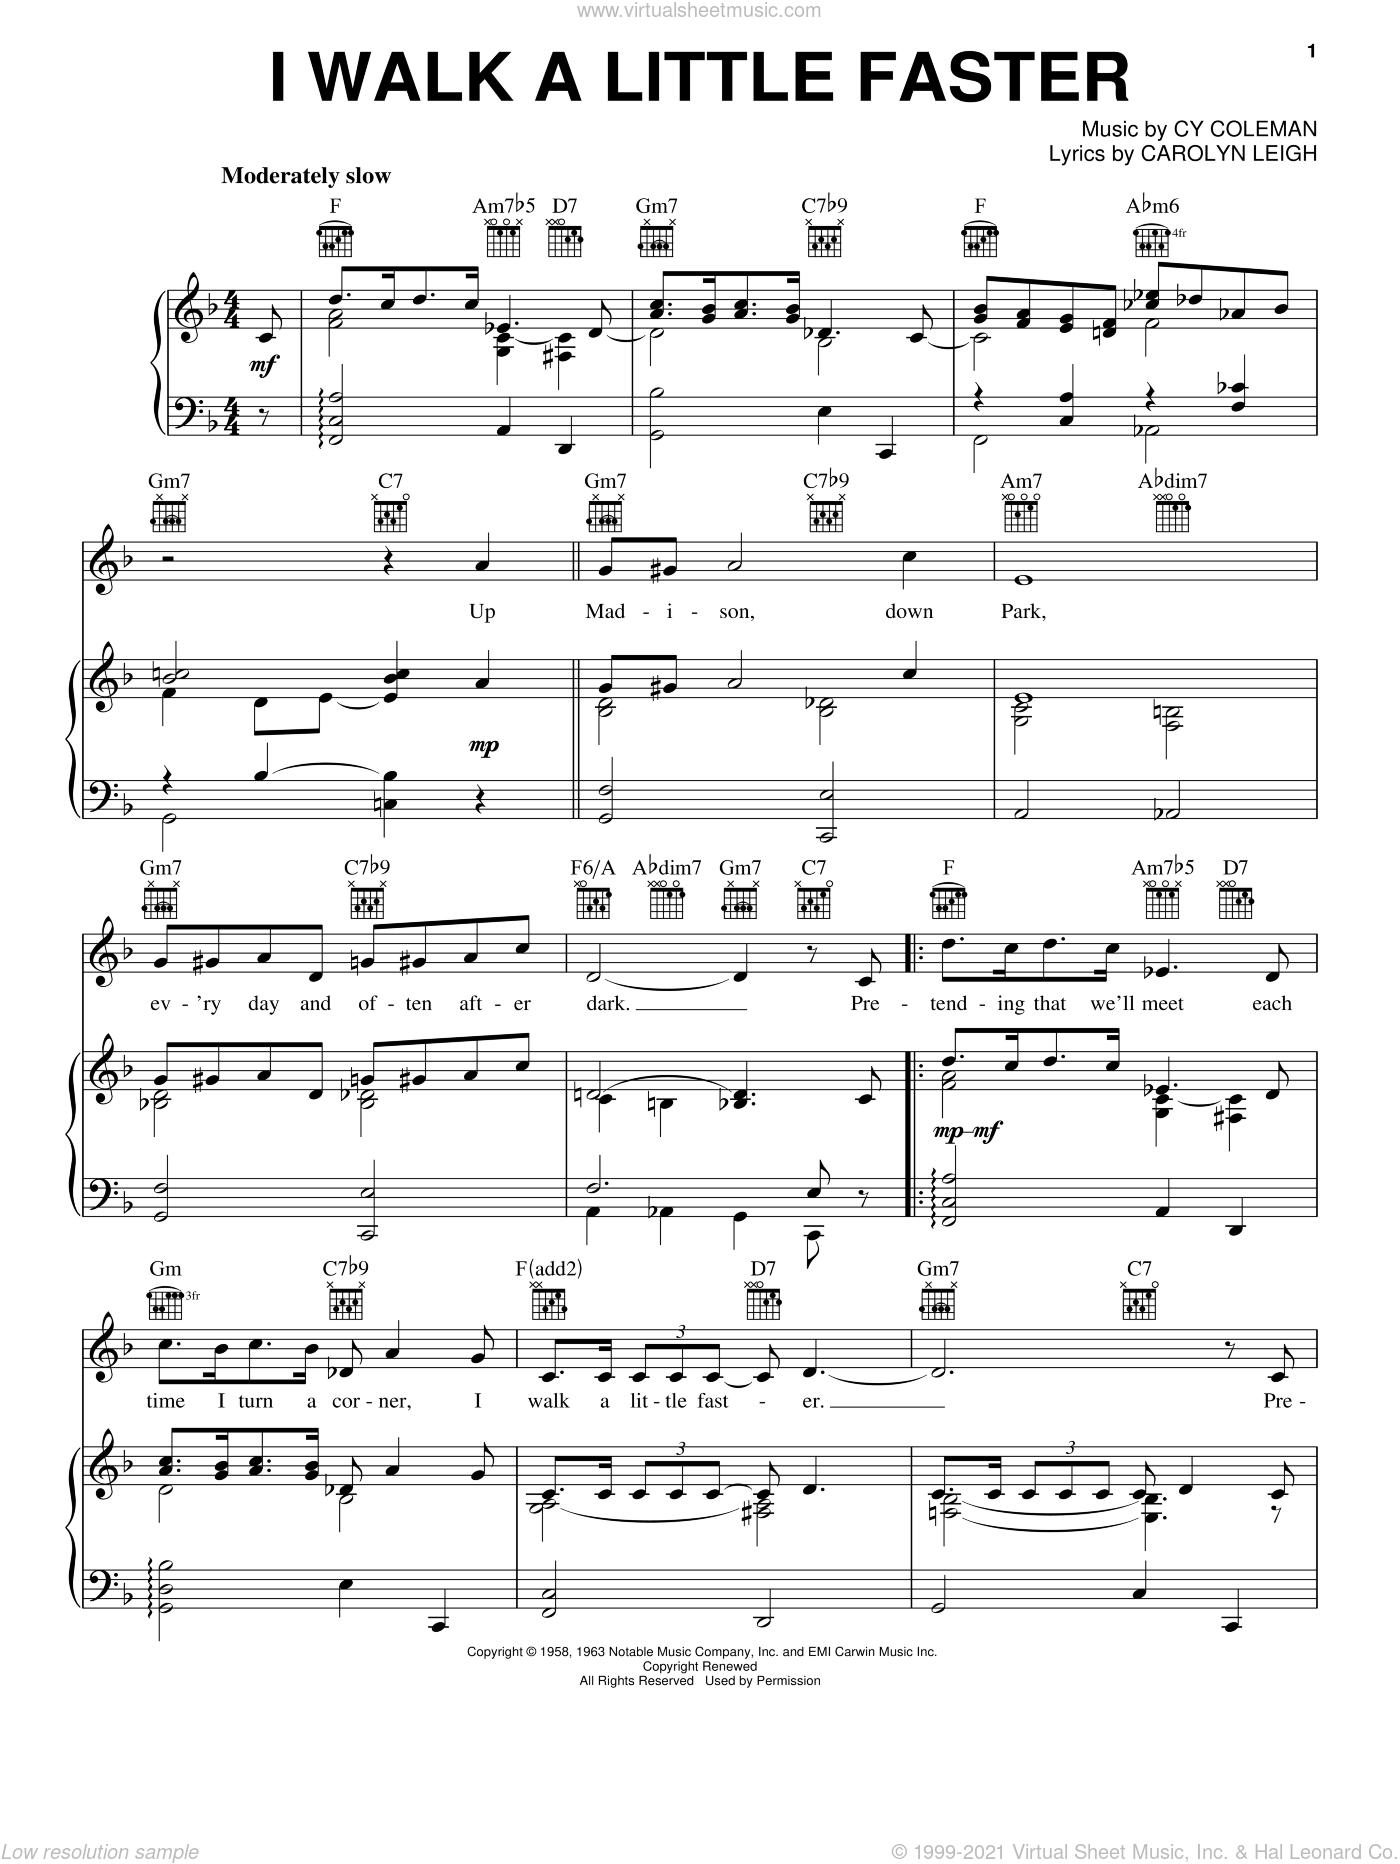 I Walk A Little Faster sheet music for voice, piano or guitar by Cy Coleman and Carolyn Leigh, intermediate skill level